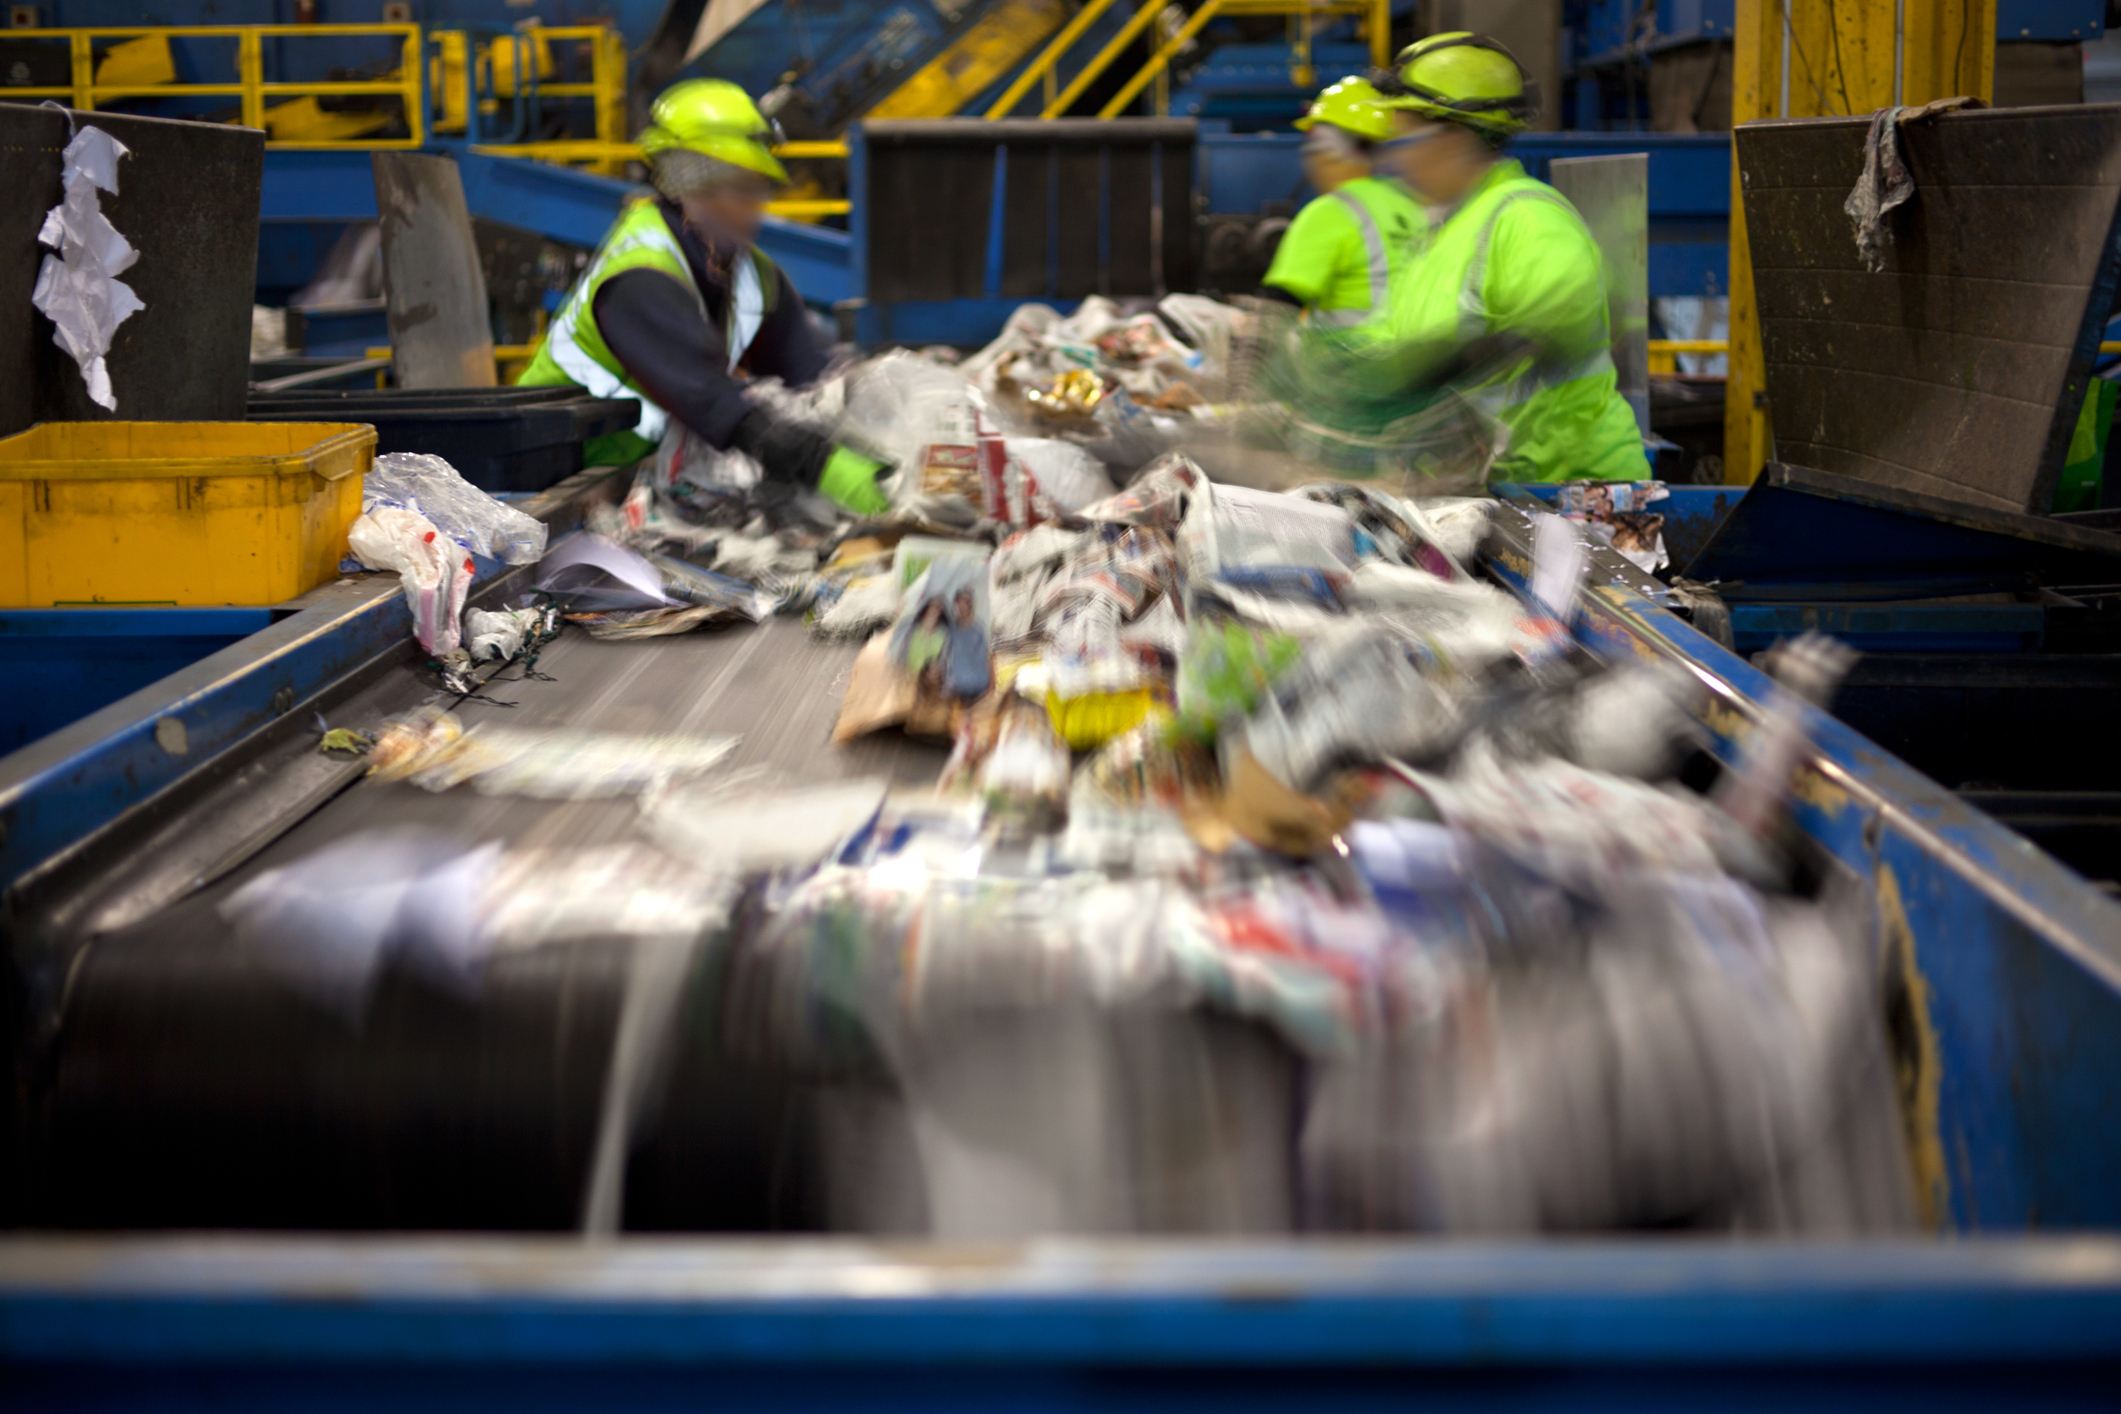 Recycling Belt Photo by hroe/iStock / Getty Images